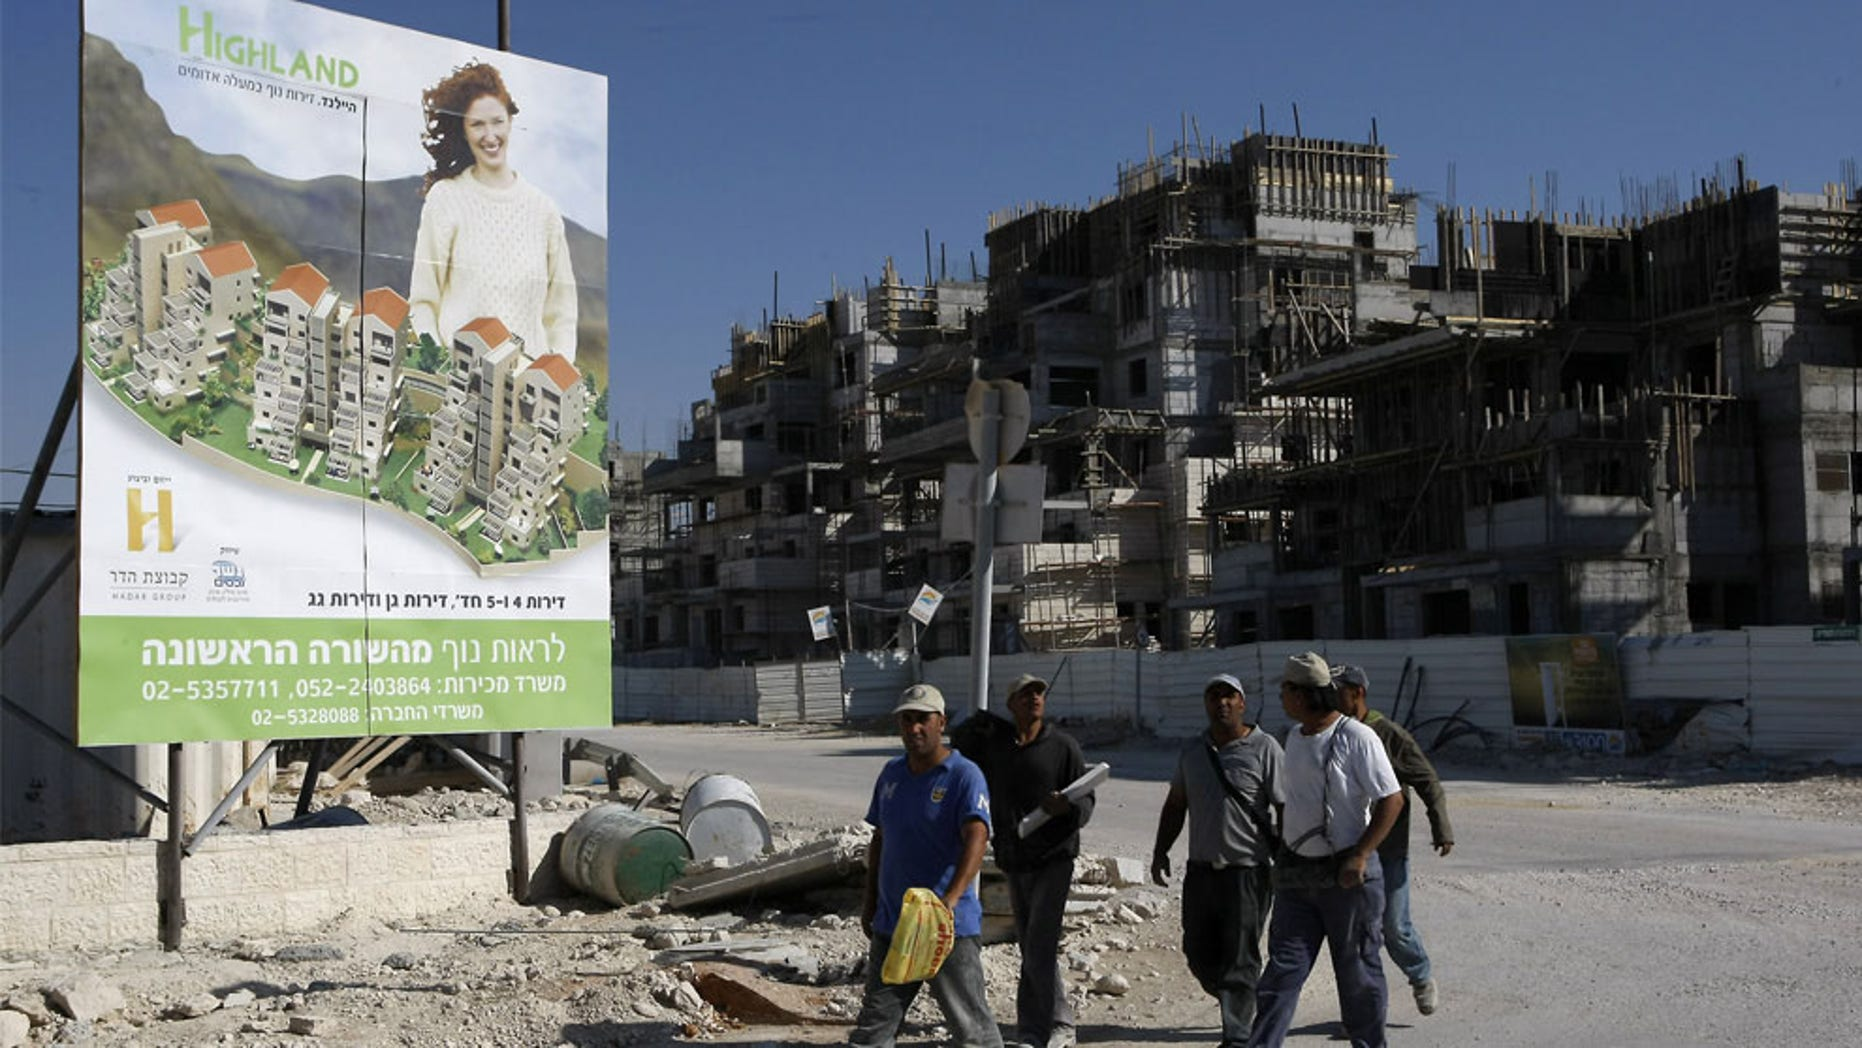 FILE: Palestinian laborers walk past a billboard advertising a new housing project in the Jewish settlement of Maale Adumim in the occupied West Bank. (AFP)